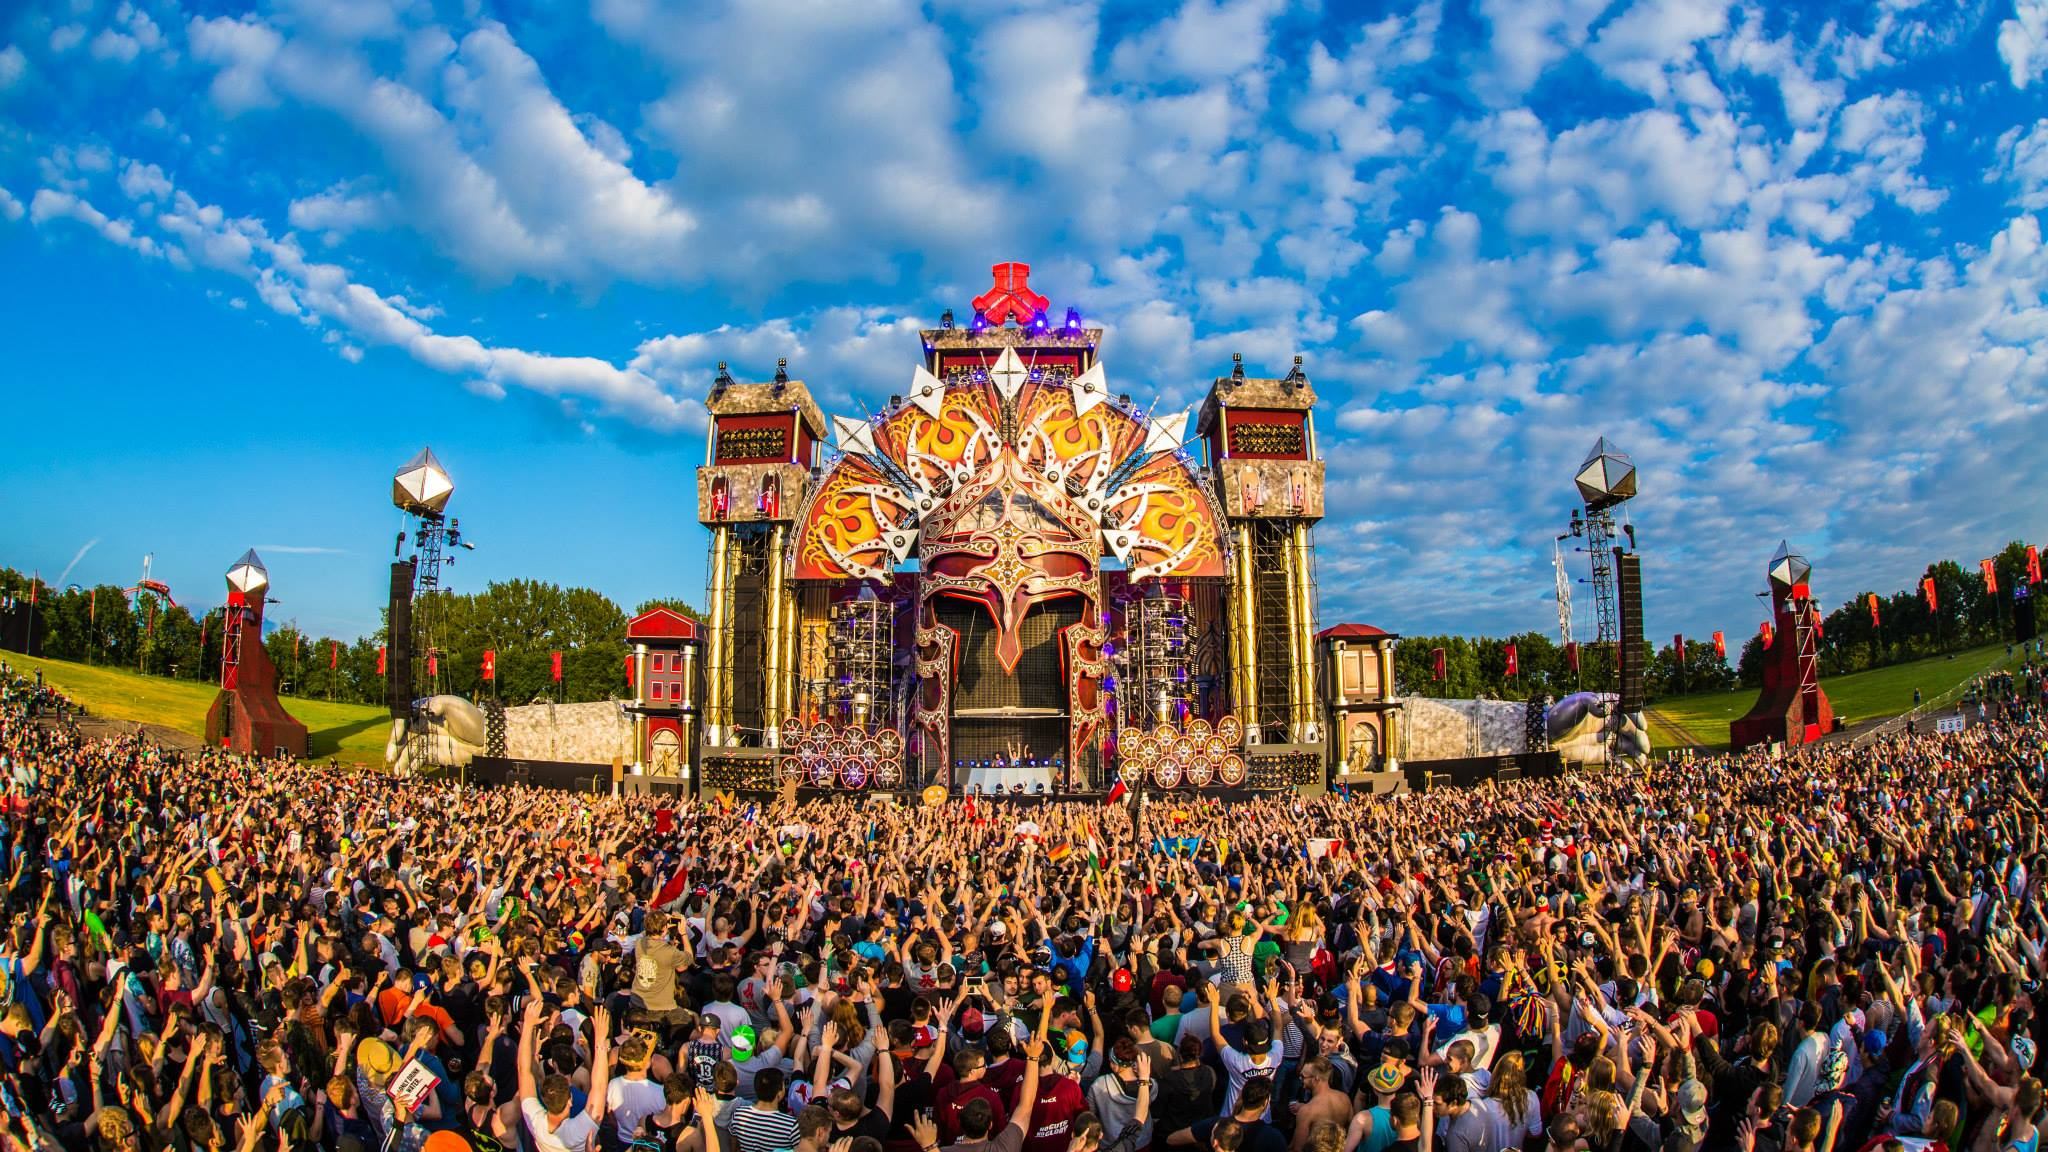 Your comprehensive weekend warriors guide to Defqon1 2048x1152